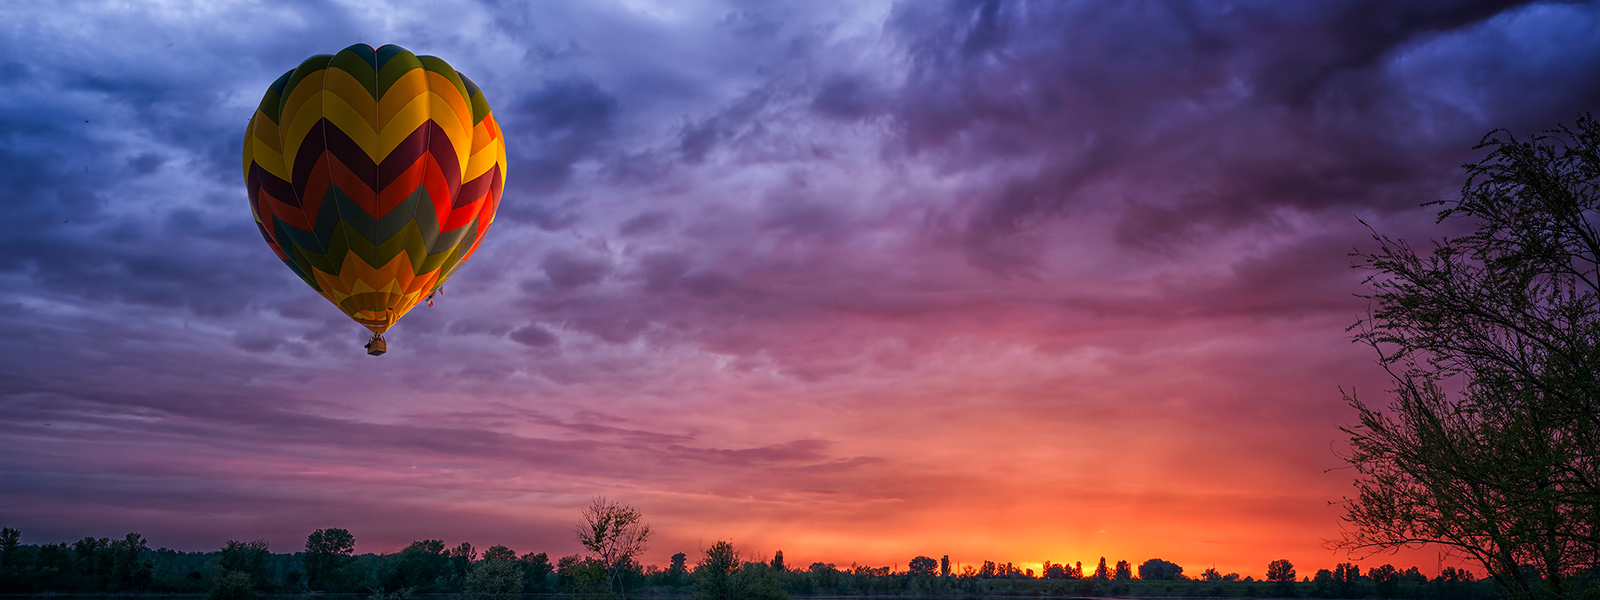 Microsoft Surface Studio showing image of hot air balloon against a brilliant sky in Vivid color mode.